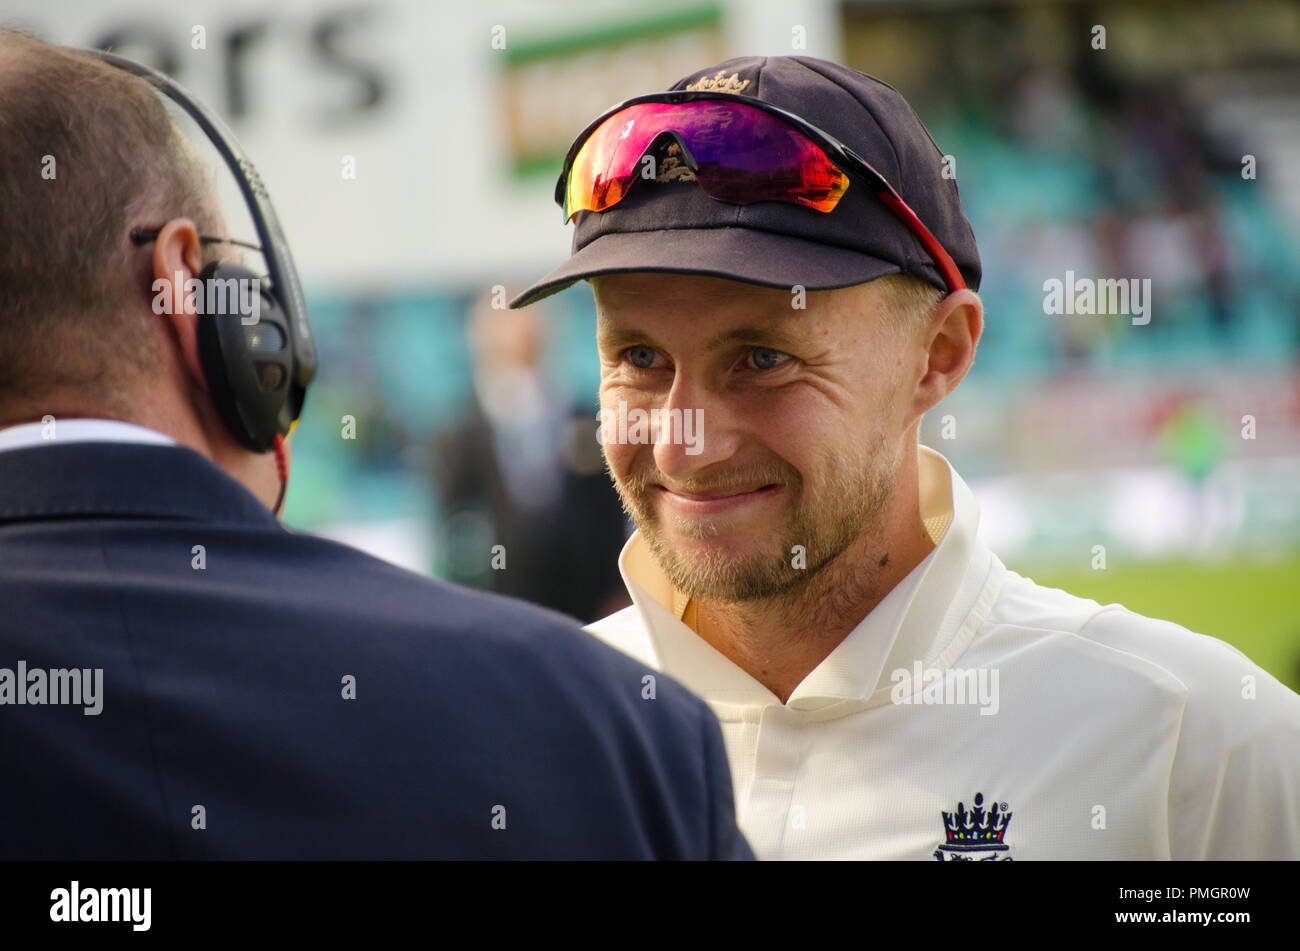 Kia Oval, London, UK. 11th Sept 2018. Specsavers England v India Test Match Cricket, 5th test, day 5; Joe Root - being interviewed by Jonathan Agnew Stock Photo